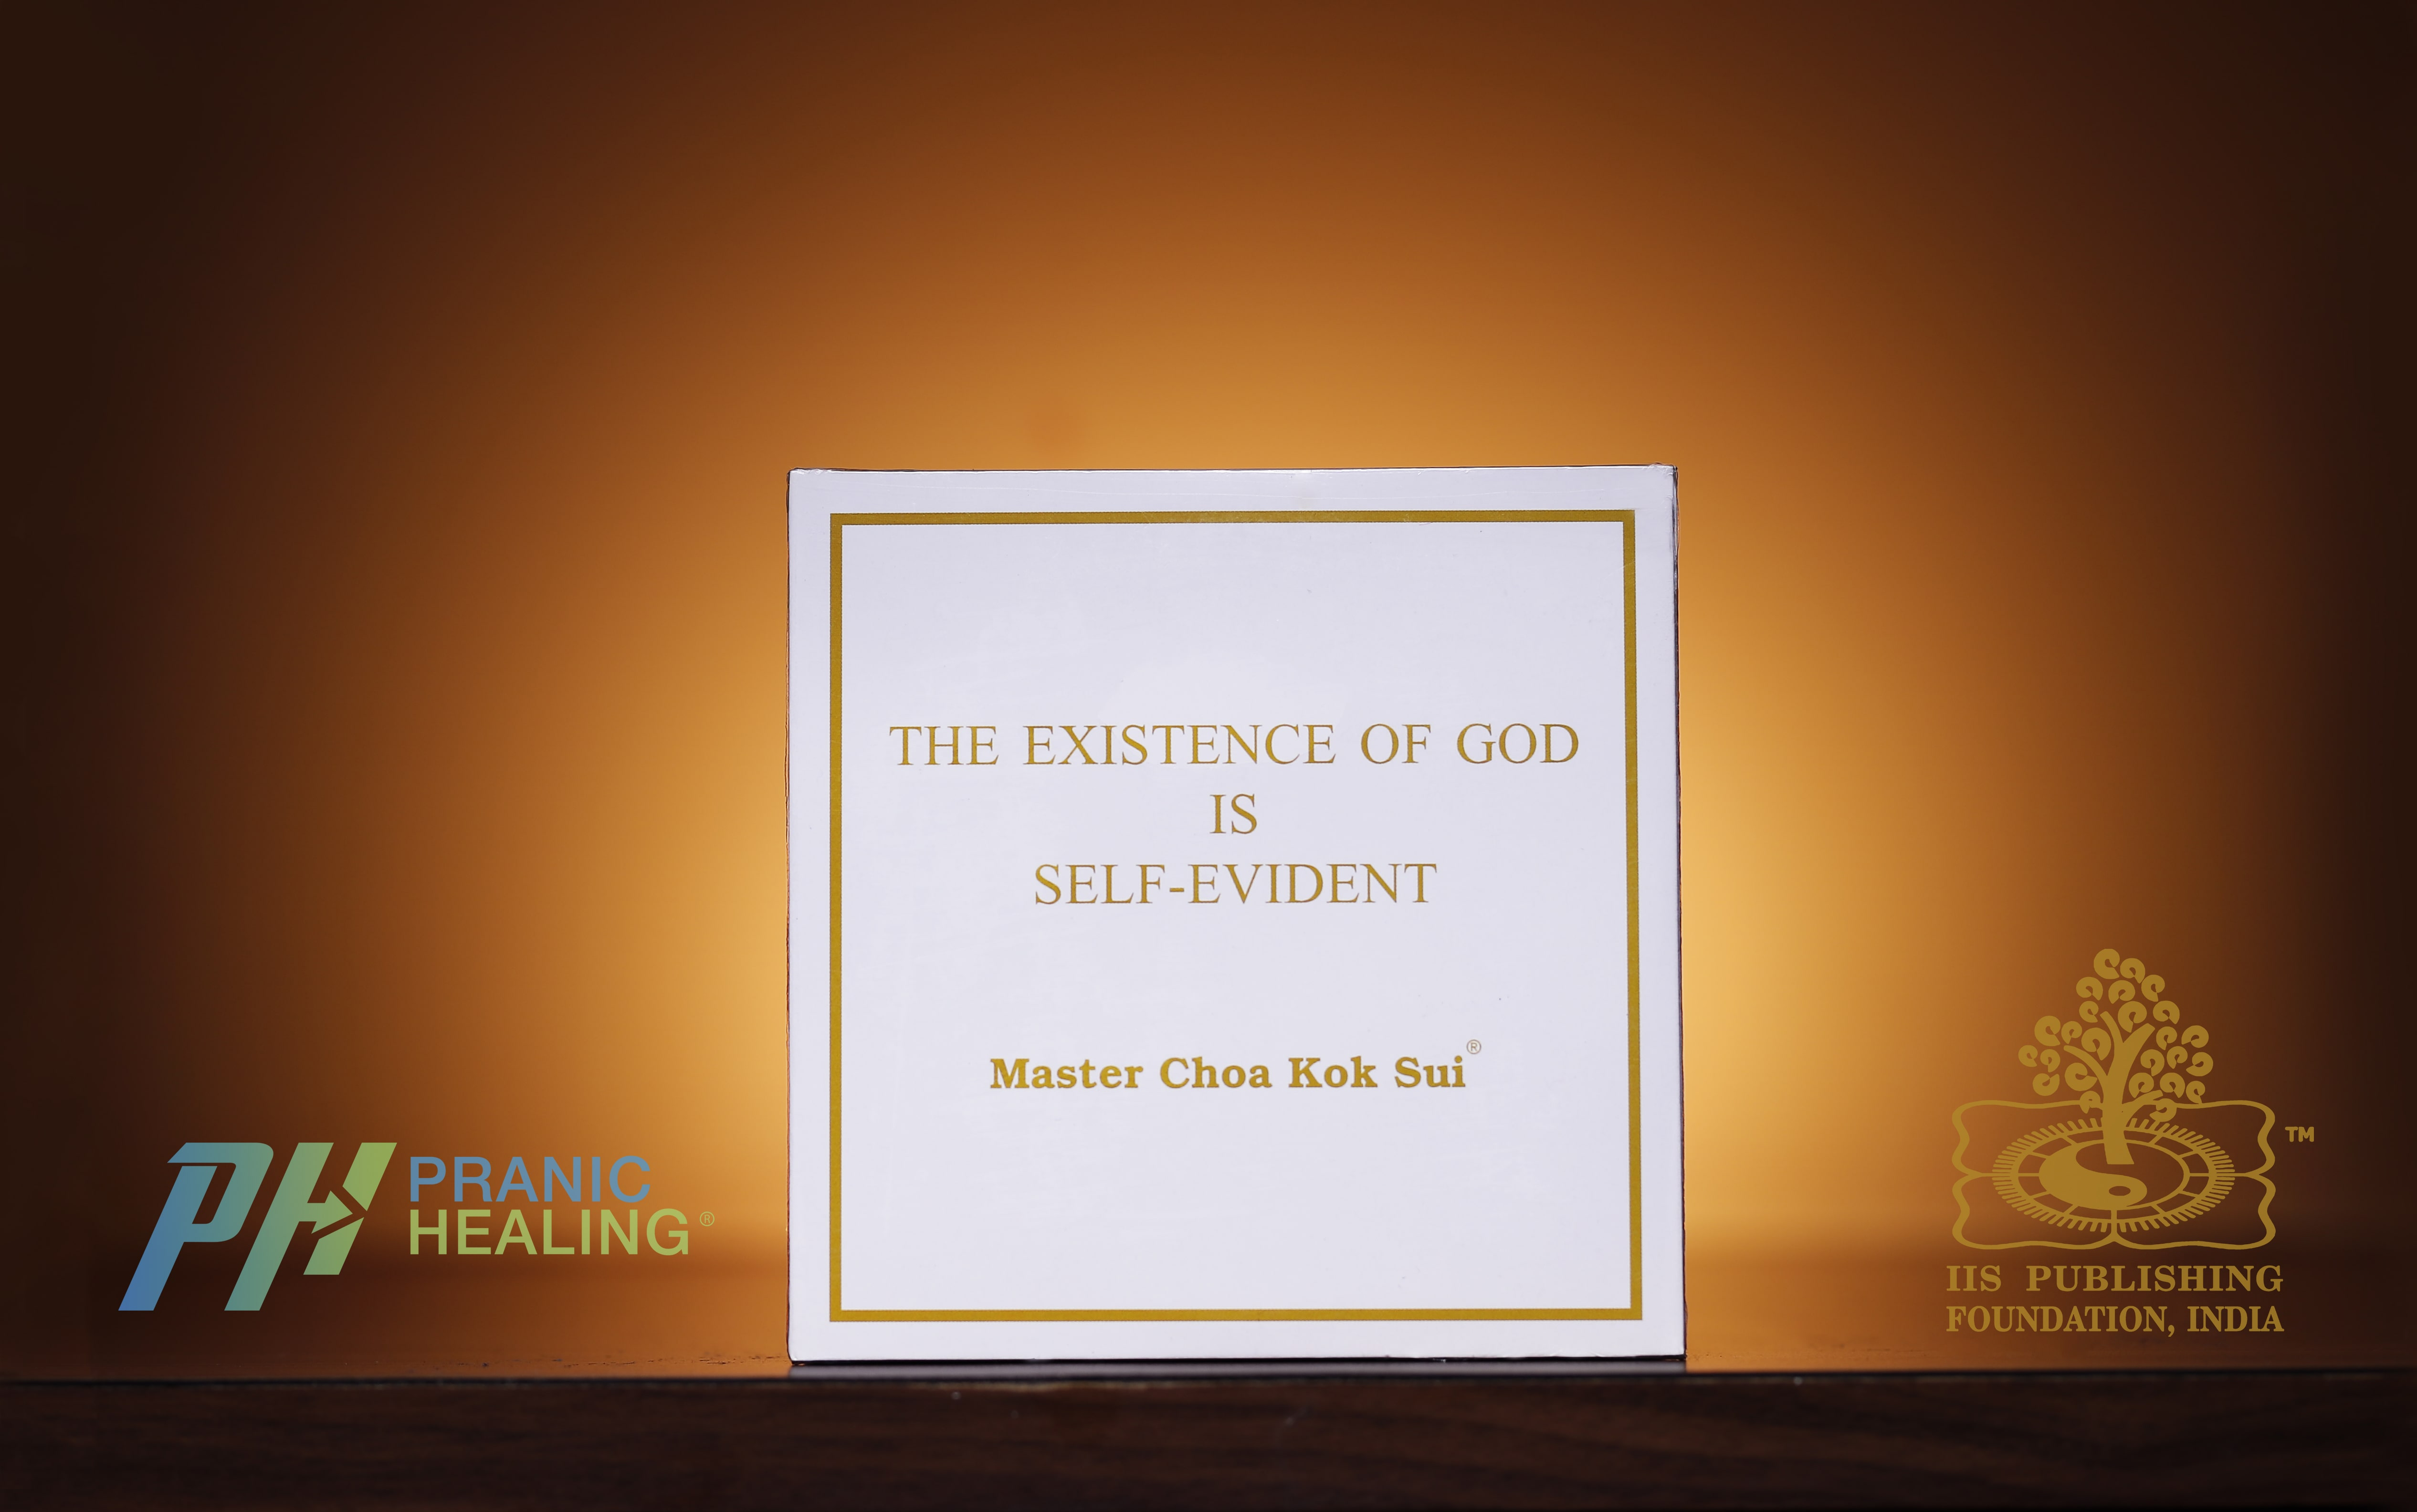 https://shop.pranichealingmumbai.com/products/existence-of-god-is-self-evident-cd